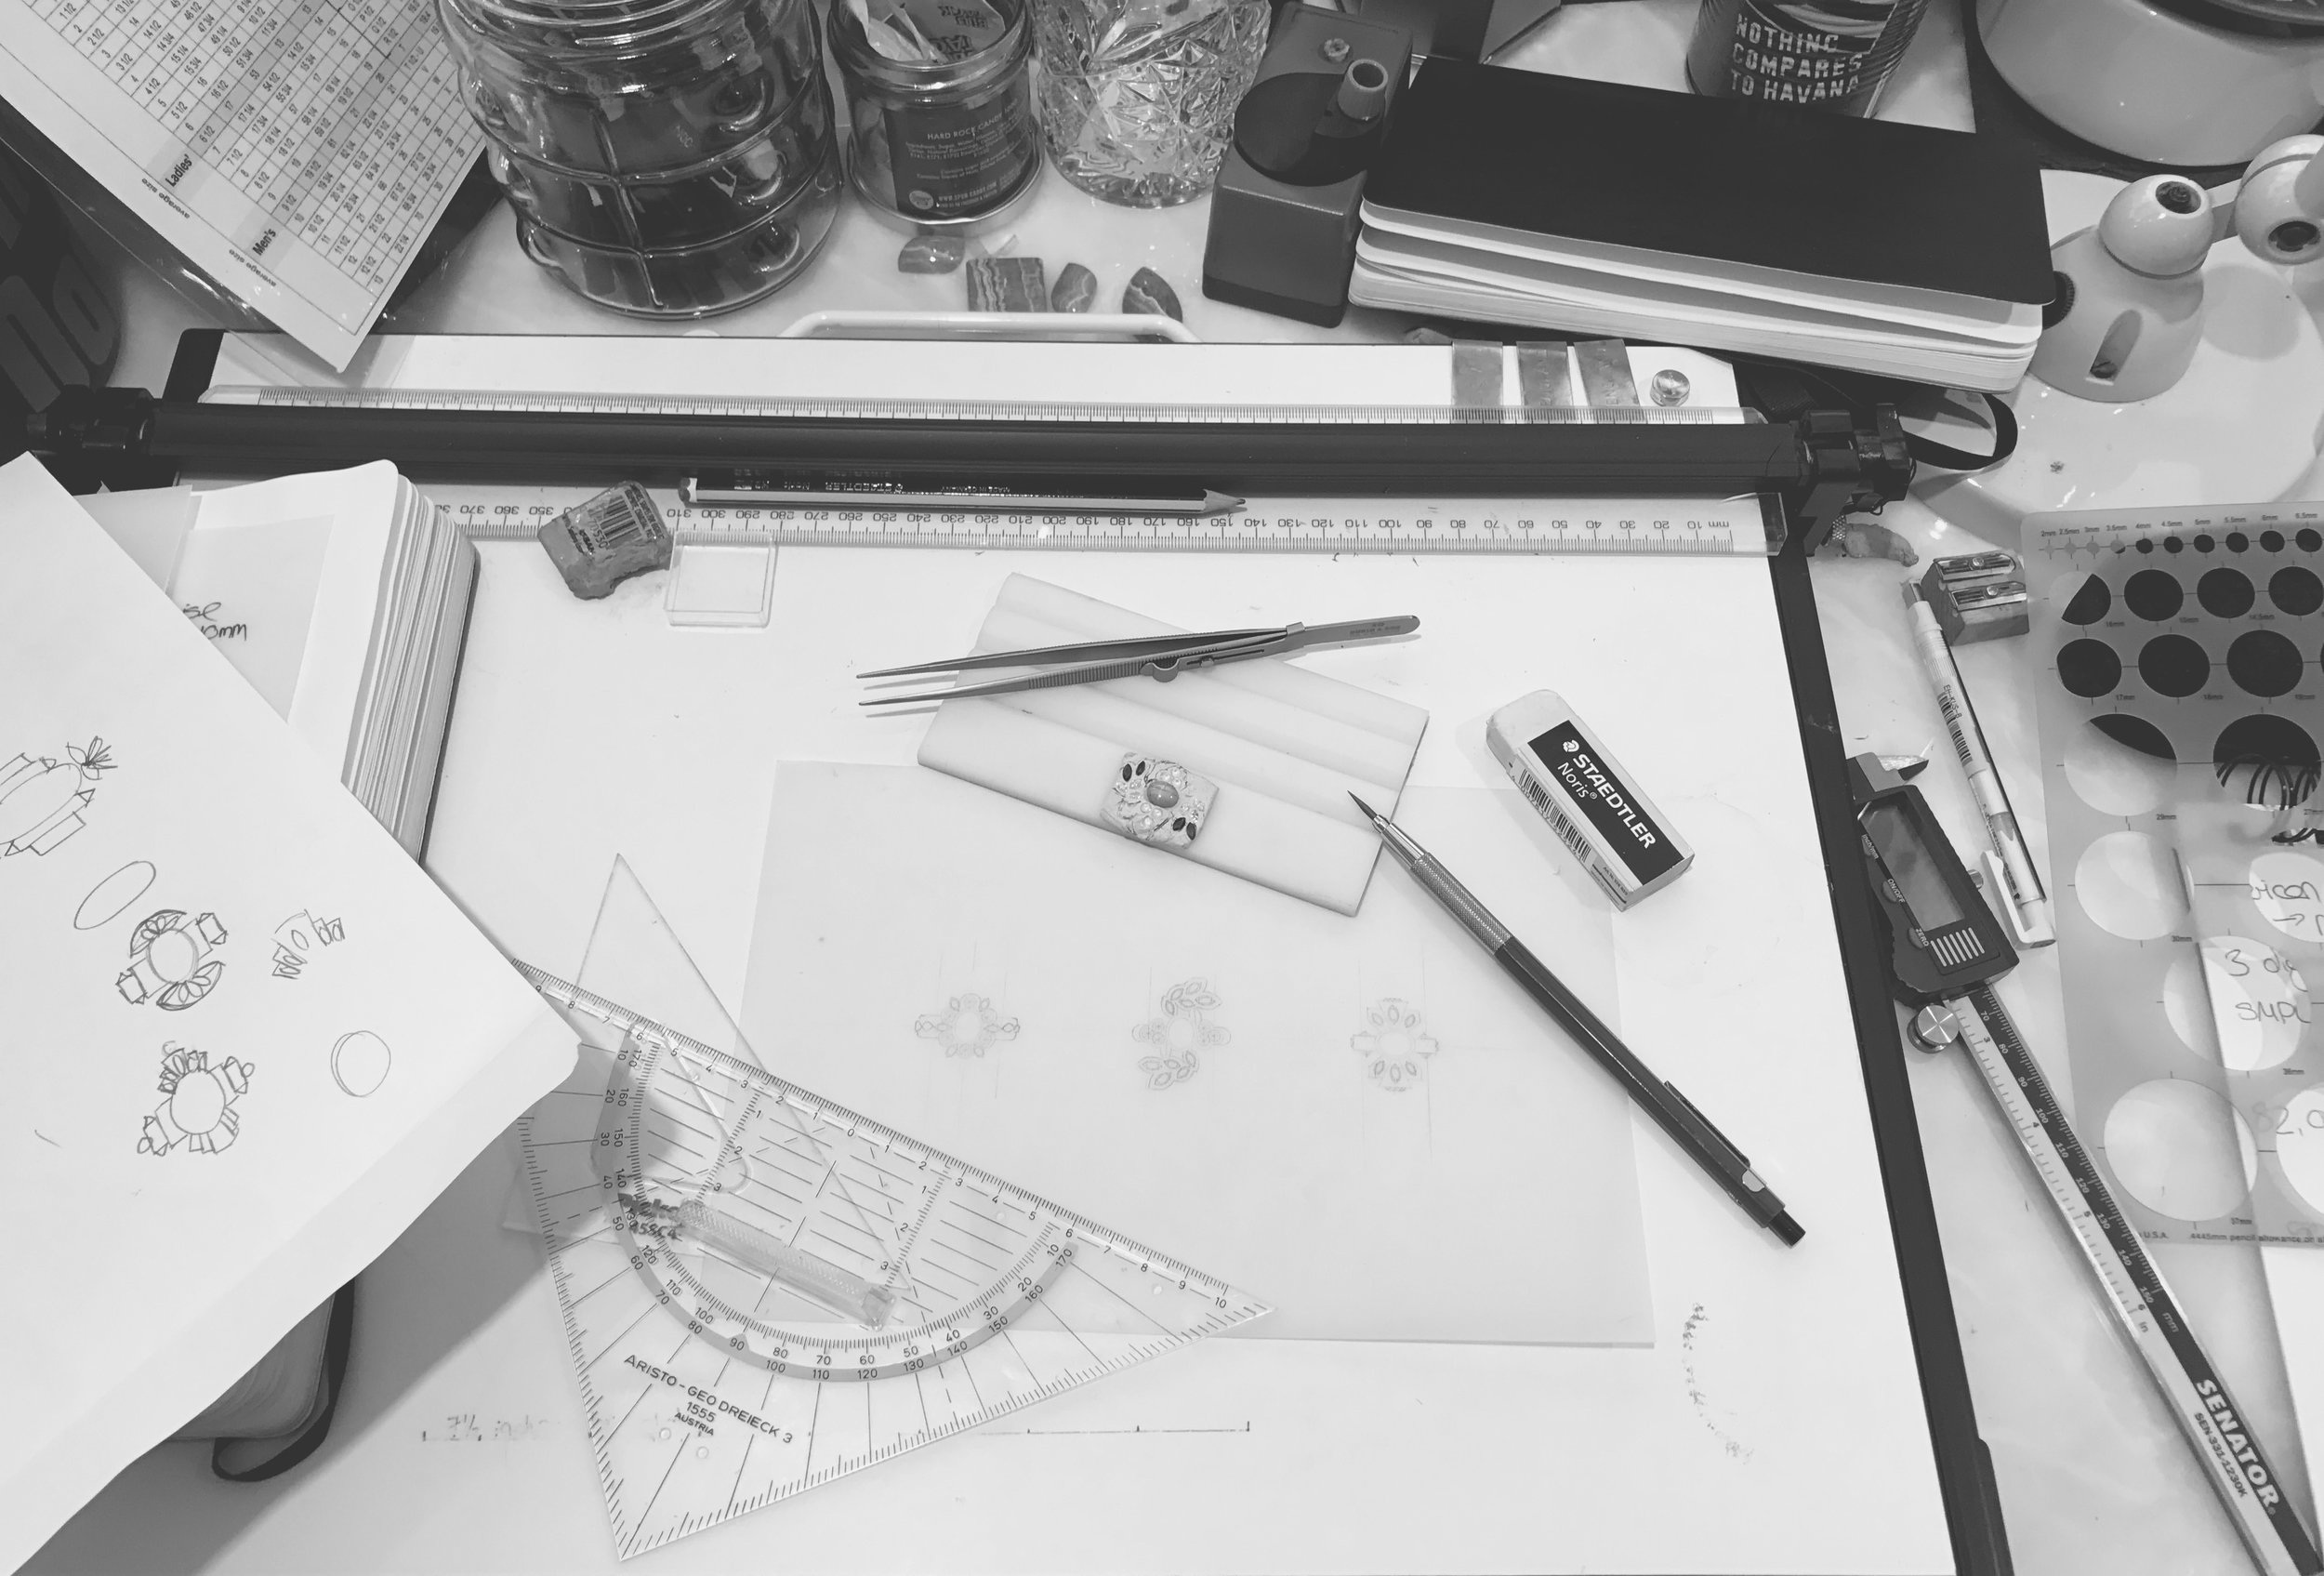 The technical drawings with ideas for the design